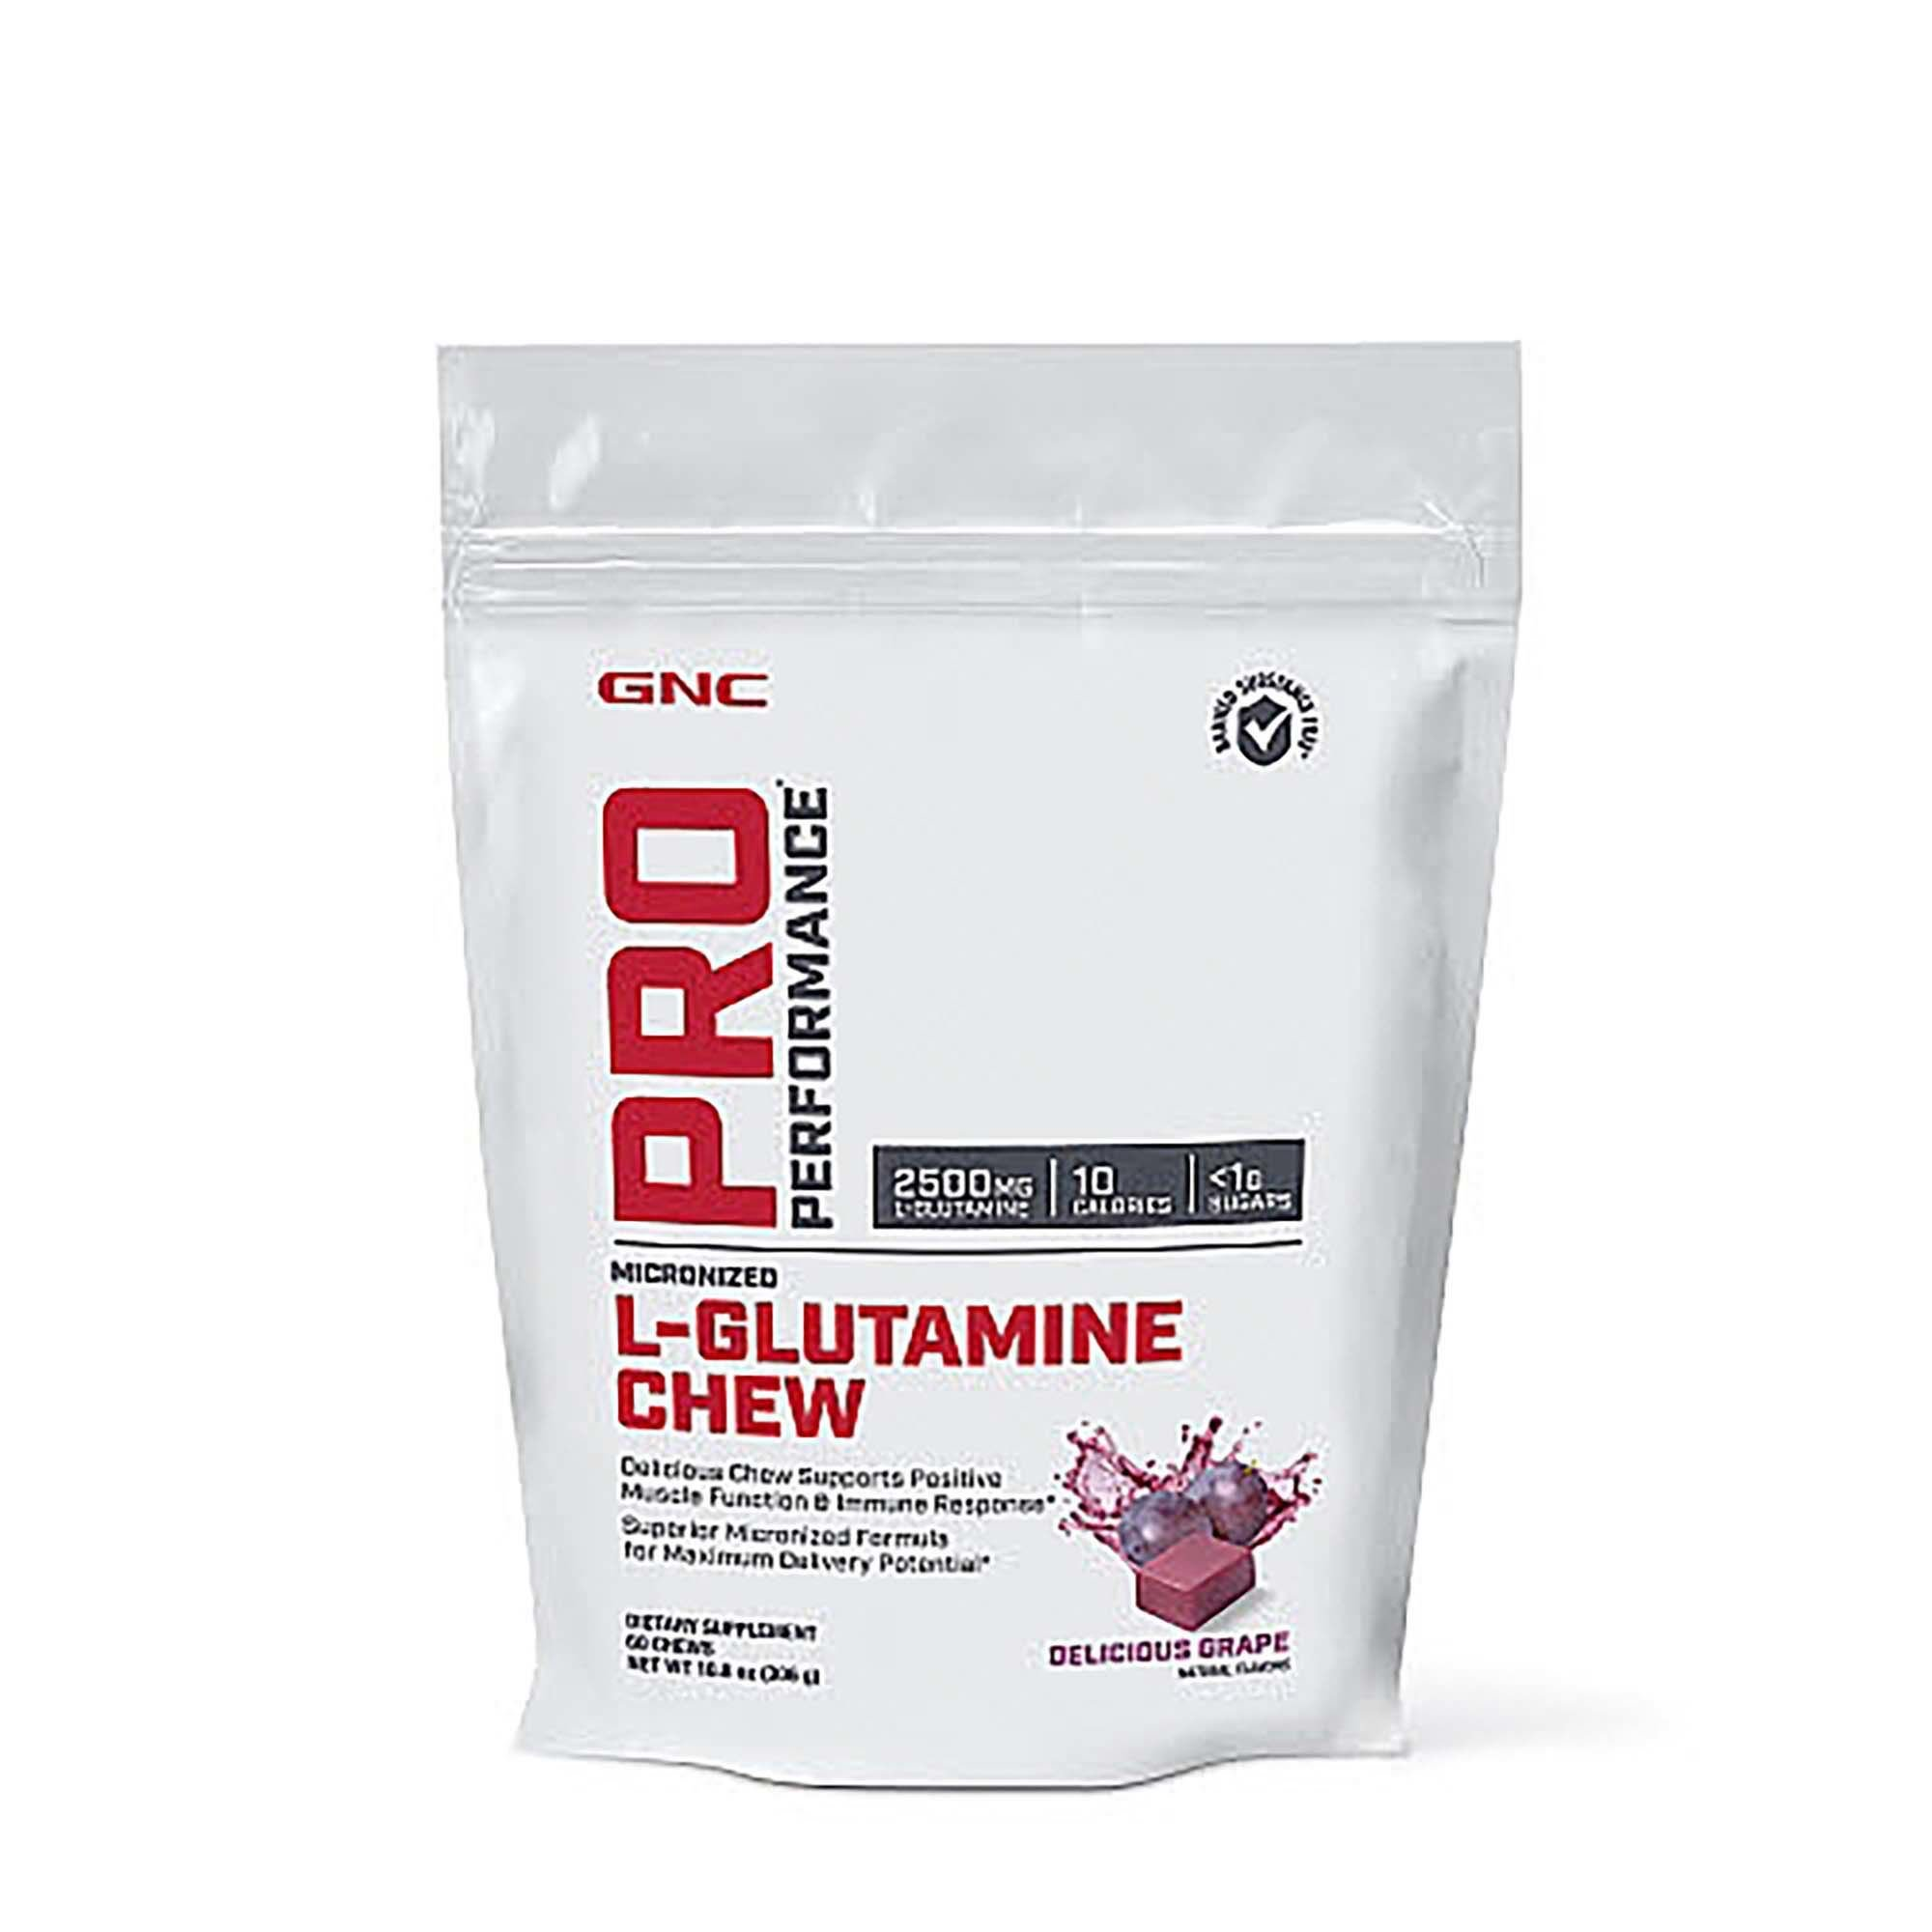 GNC Pro Performance L-Glutamine Chew, Delicious Grape, 60 Chews, Supports Positive Muscle Function and Immune Response by GNC